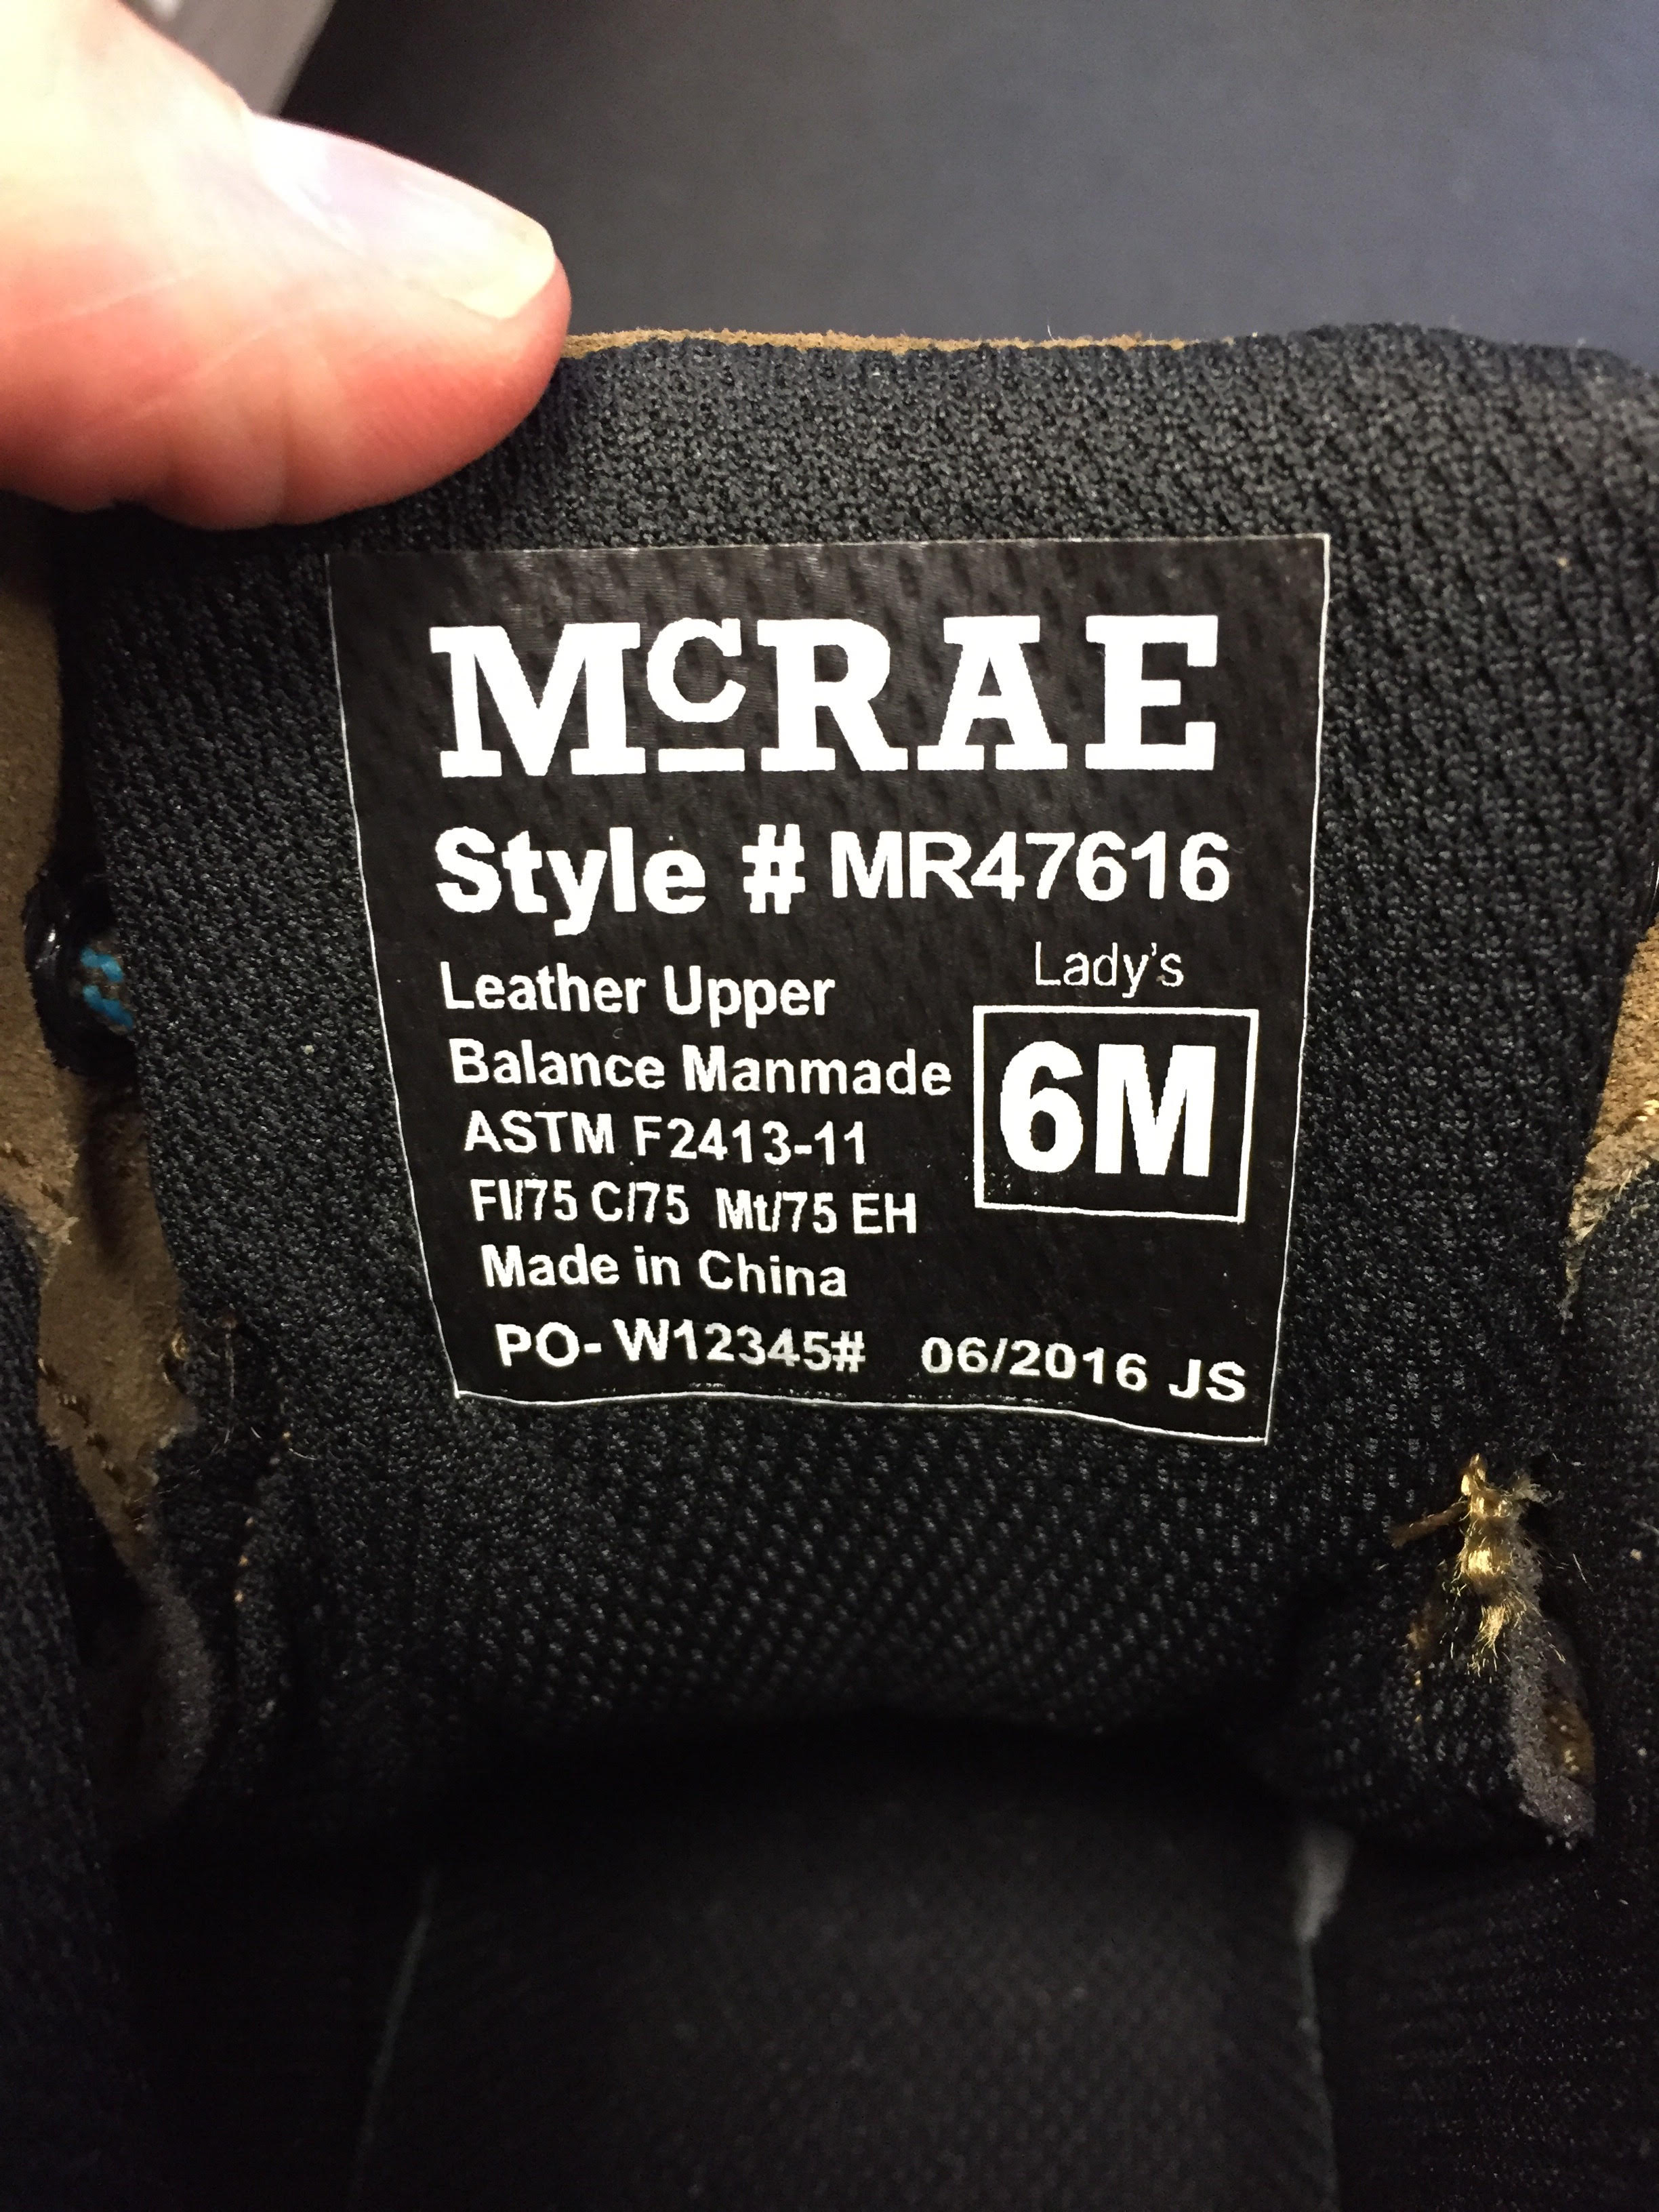 Style label on recalled safety boots and shoes